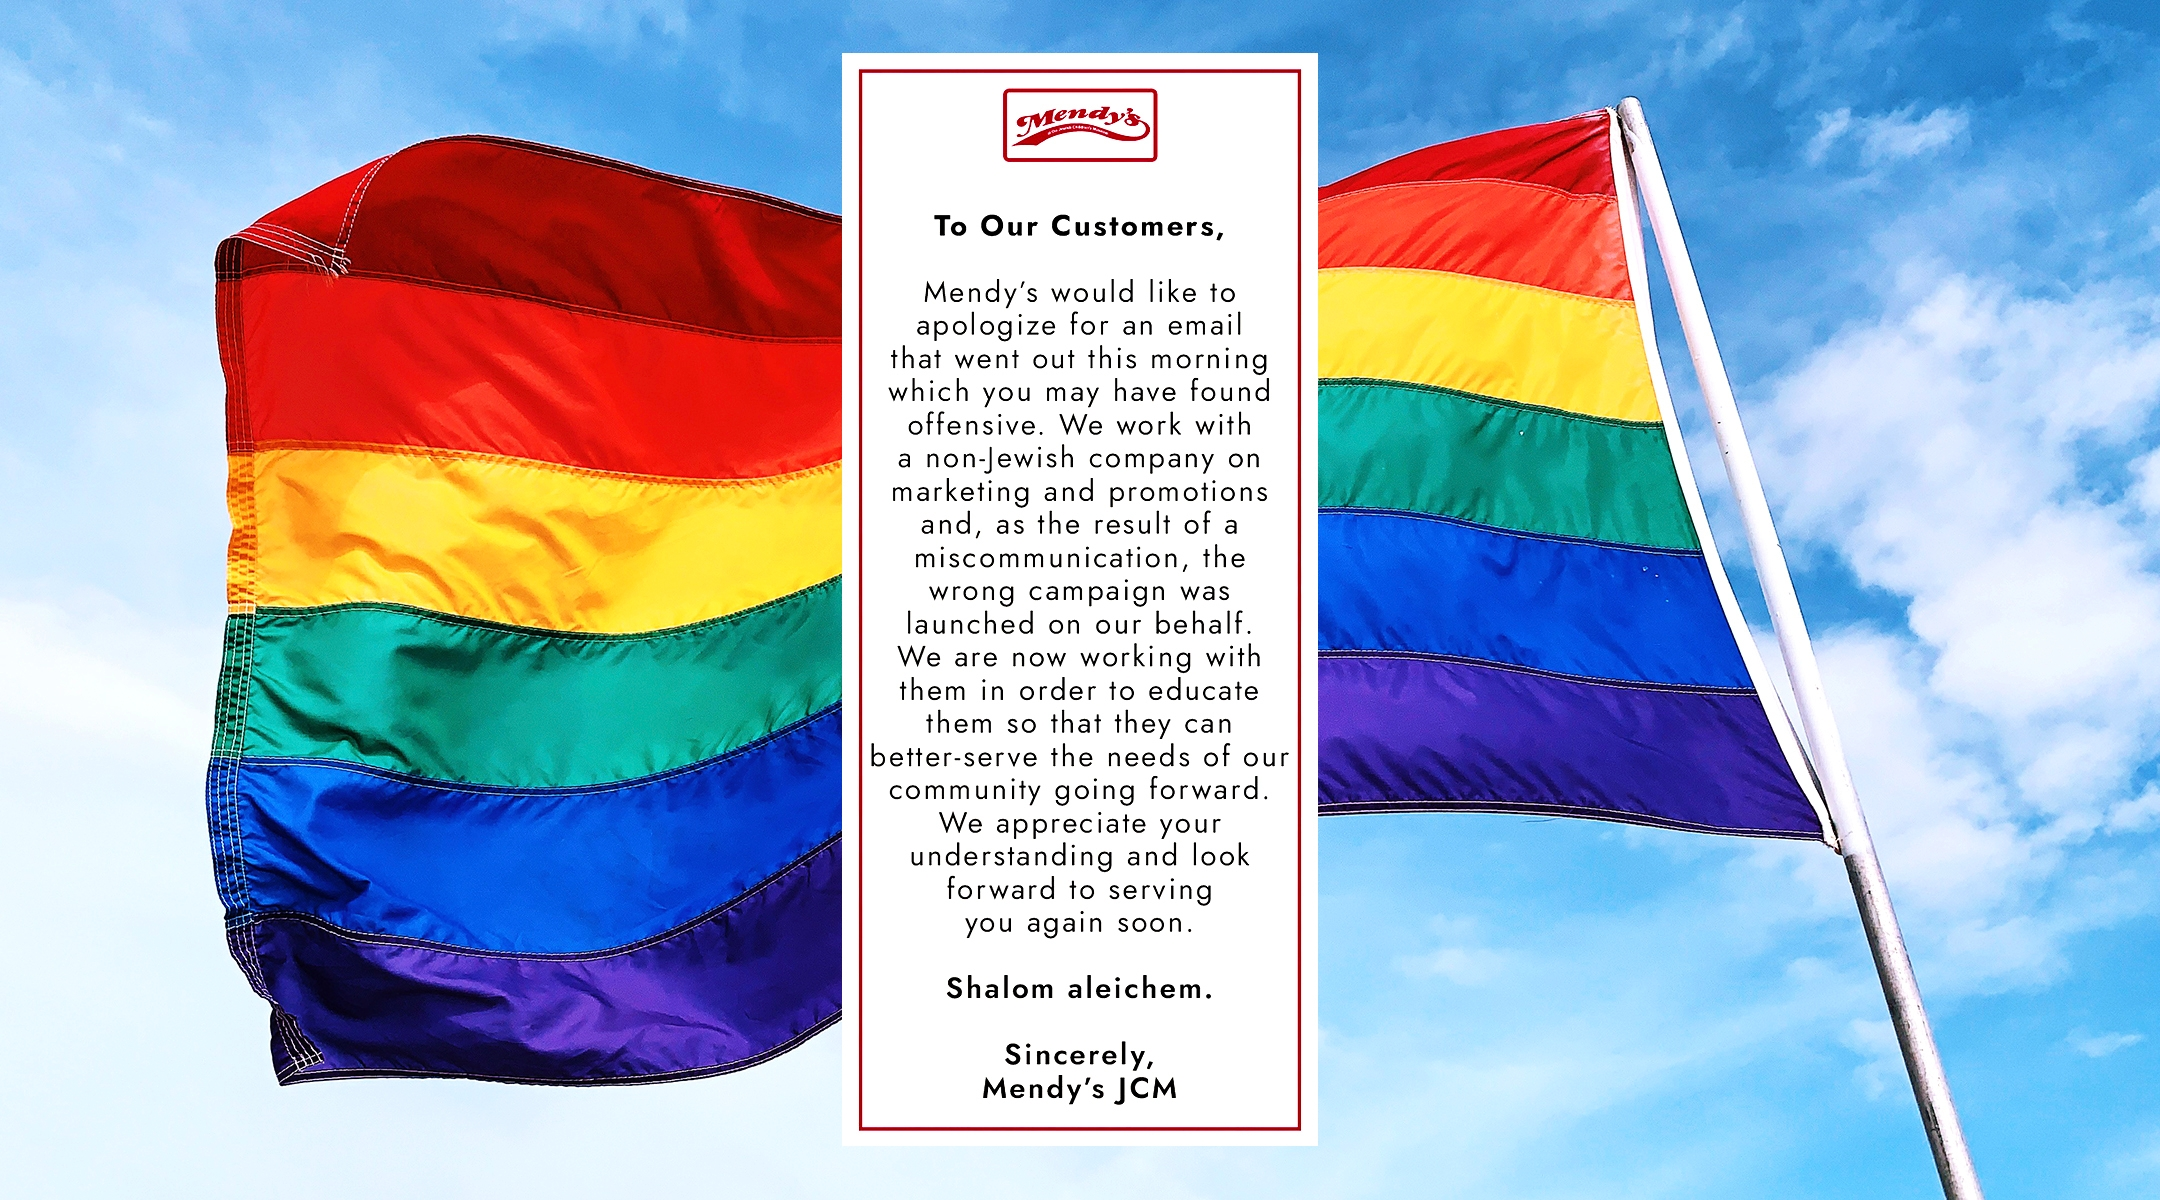 2 New York City kosher restaurants sent Pride emails. They didn't mean to.